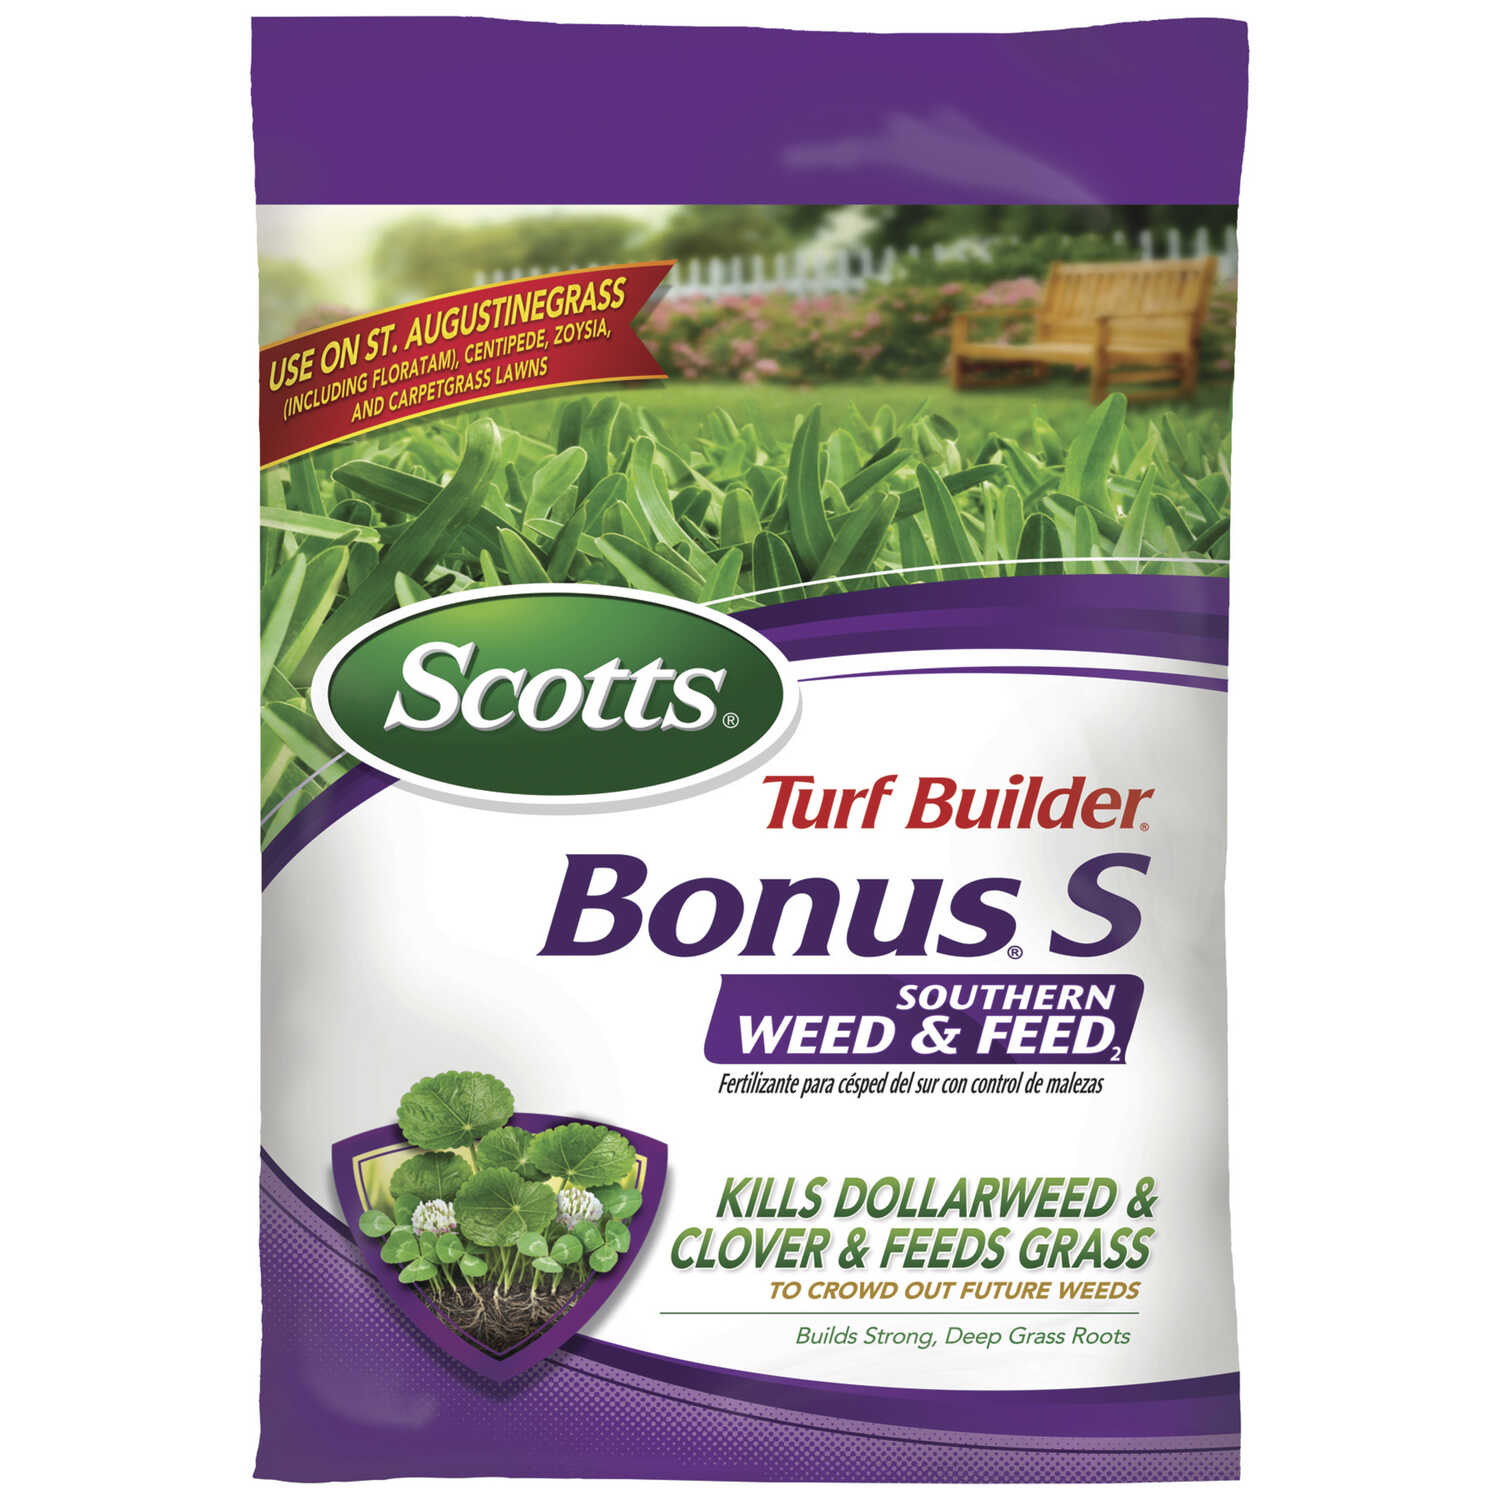 Scotts  Green Max  27-0-2, 29-0-10  Lawn Fertilizer  For Southern 26 lb. 5000 sq. ft.